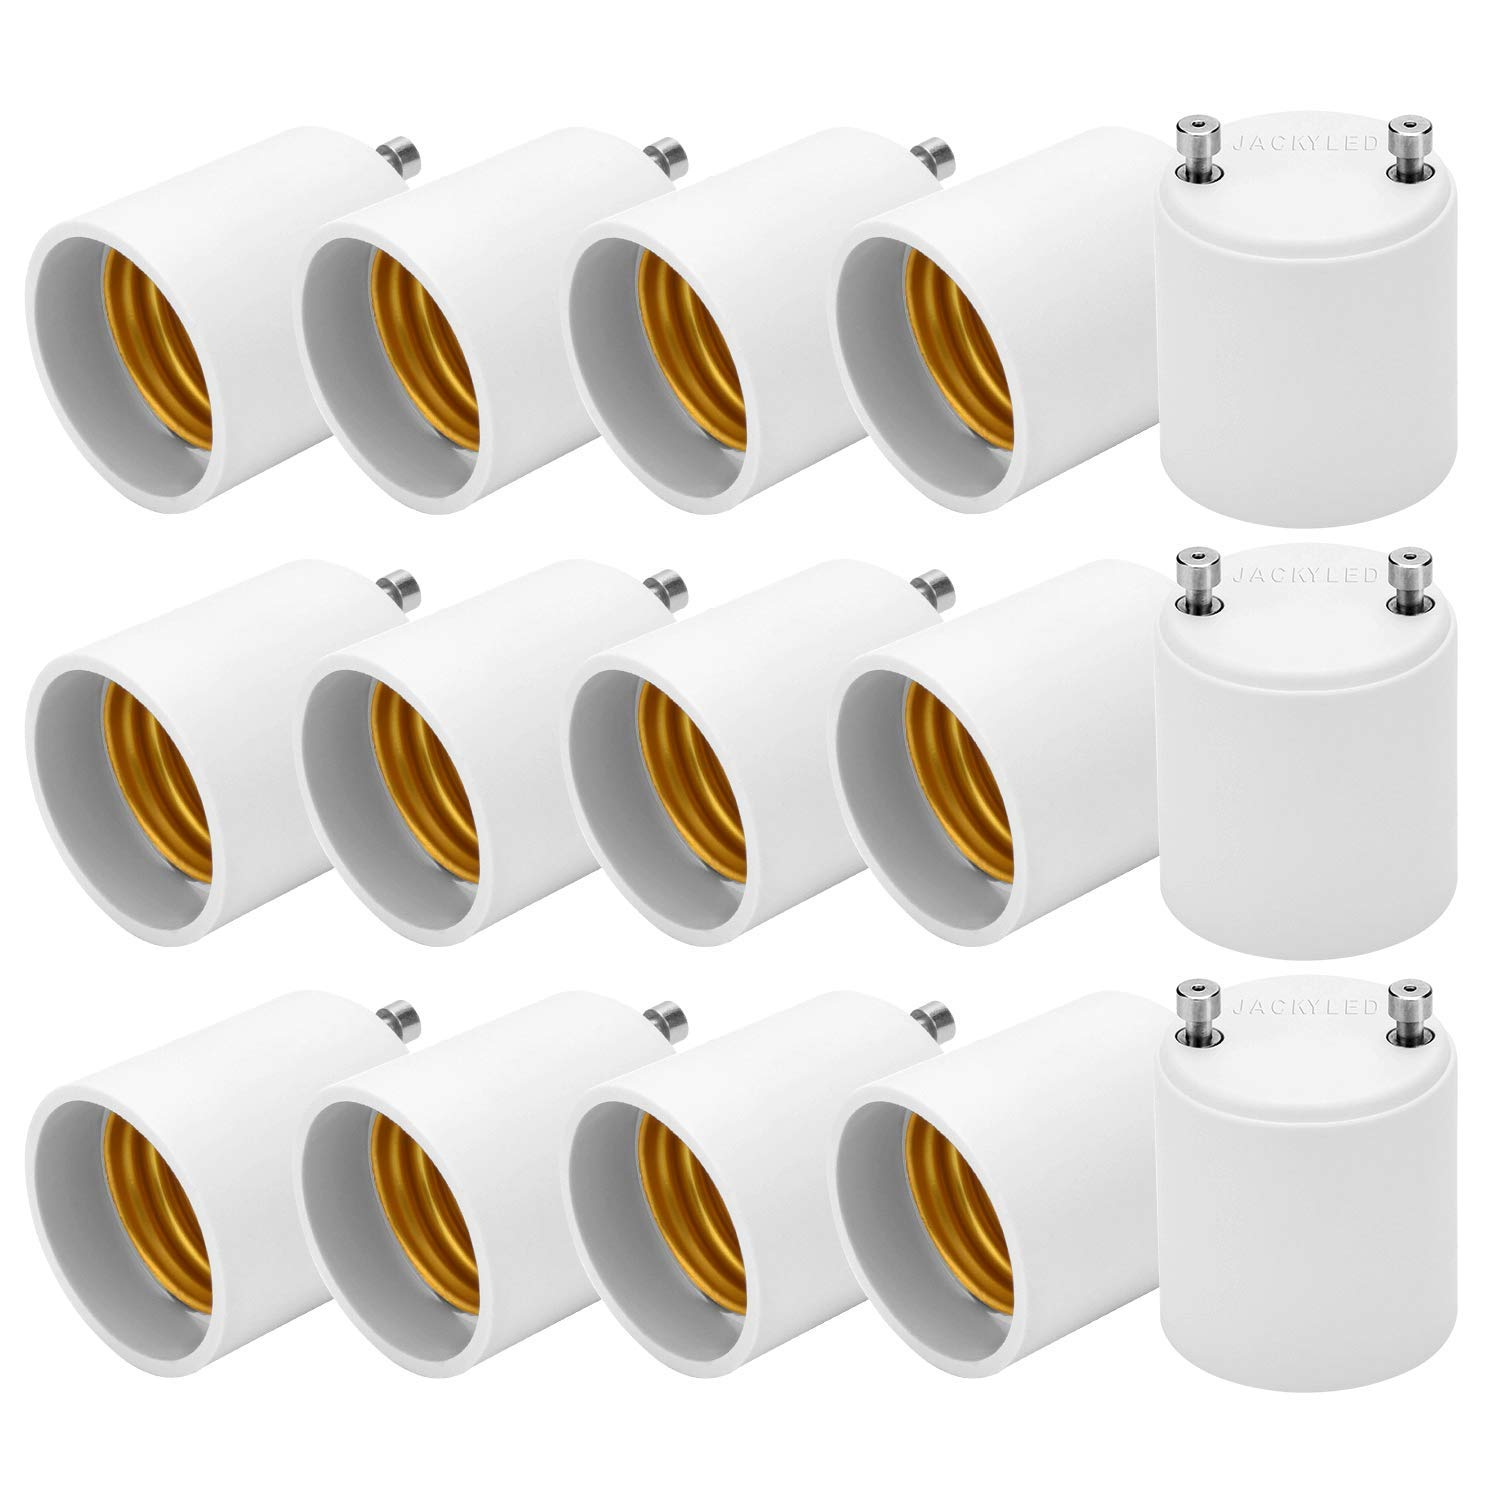 JACKYLED GU24 to E26 E27 Adapter 15-pack Heat Resistant Up to 200℃ Fire Resistant Converts GU24 Pin Base Fixture to E26 E27 Standard Screw-in Socket